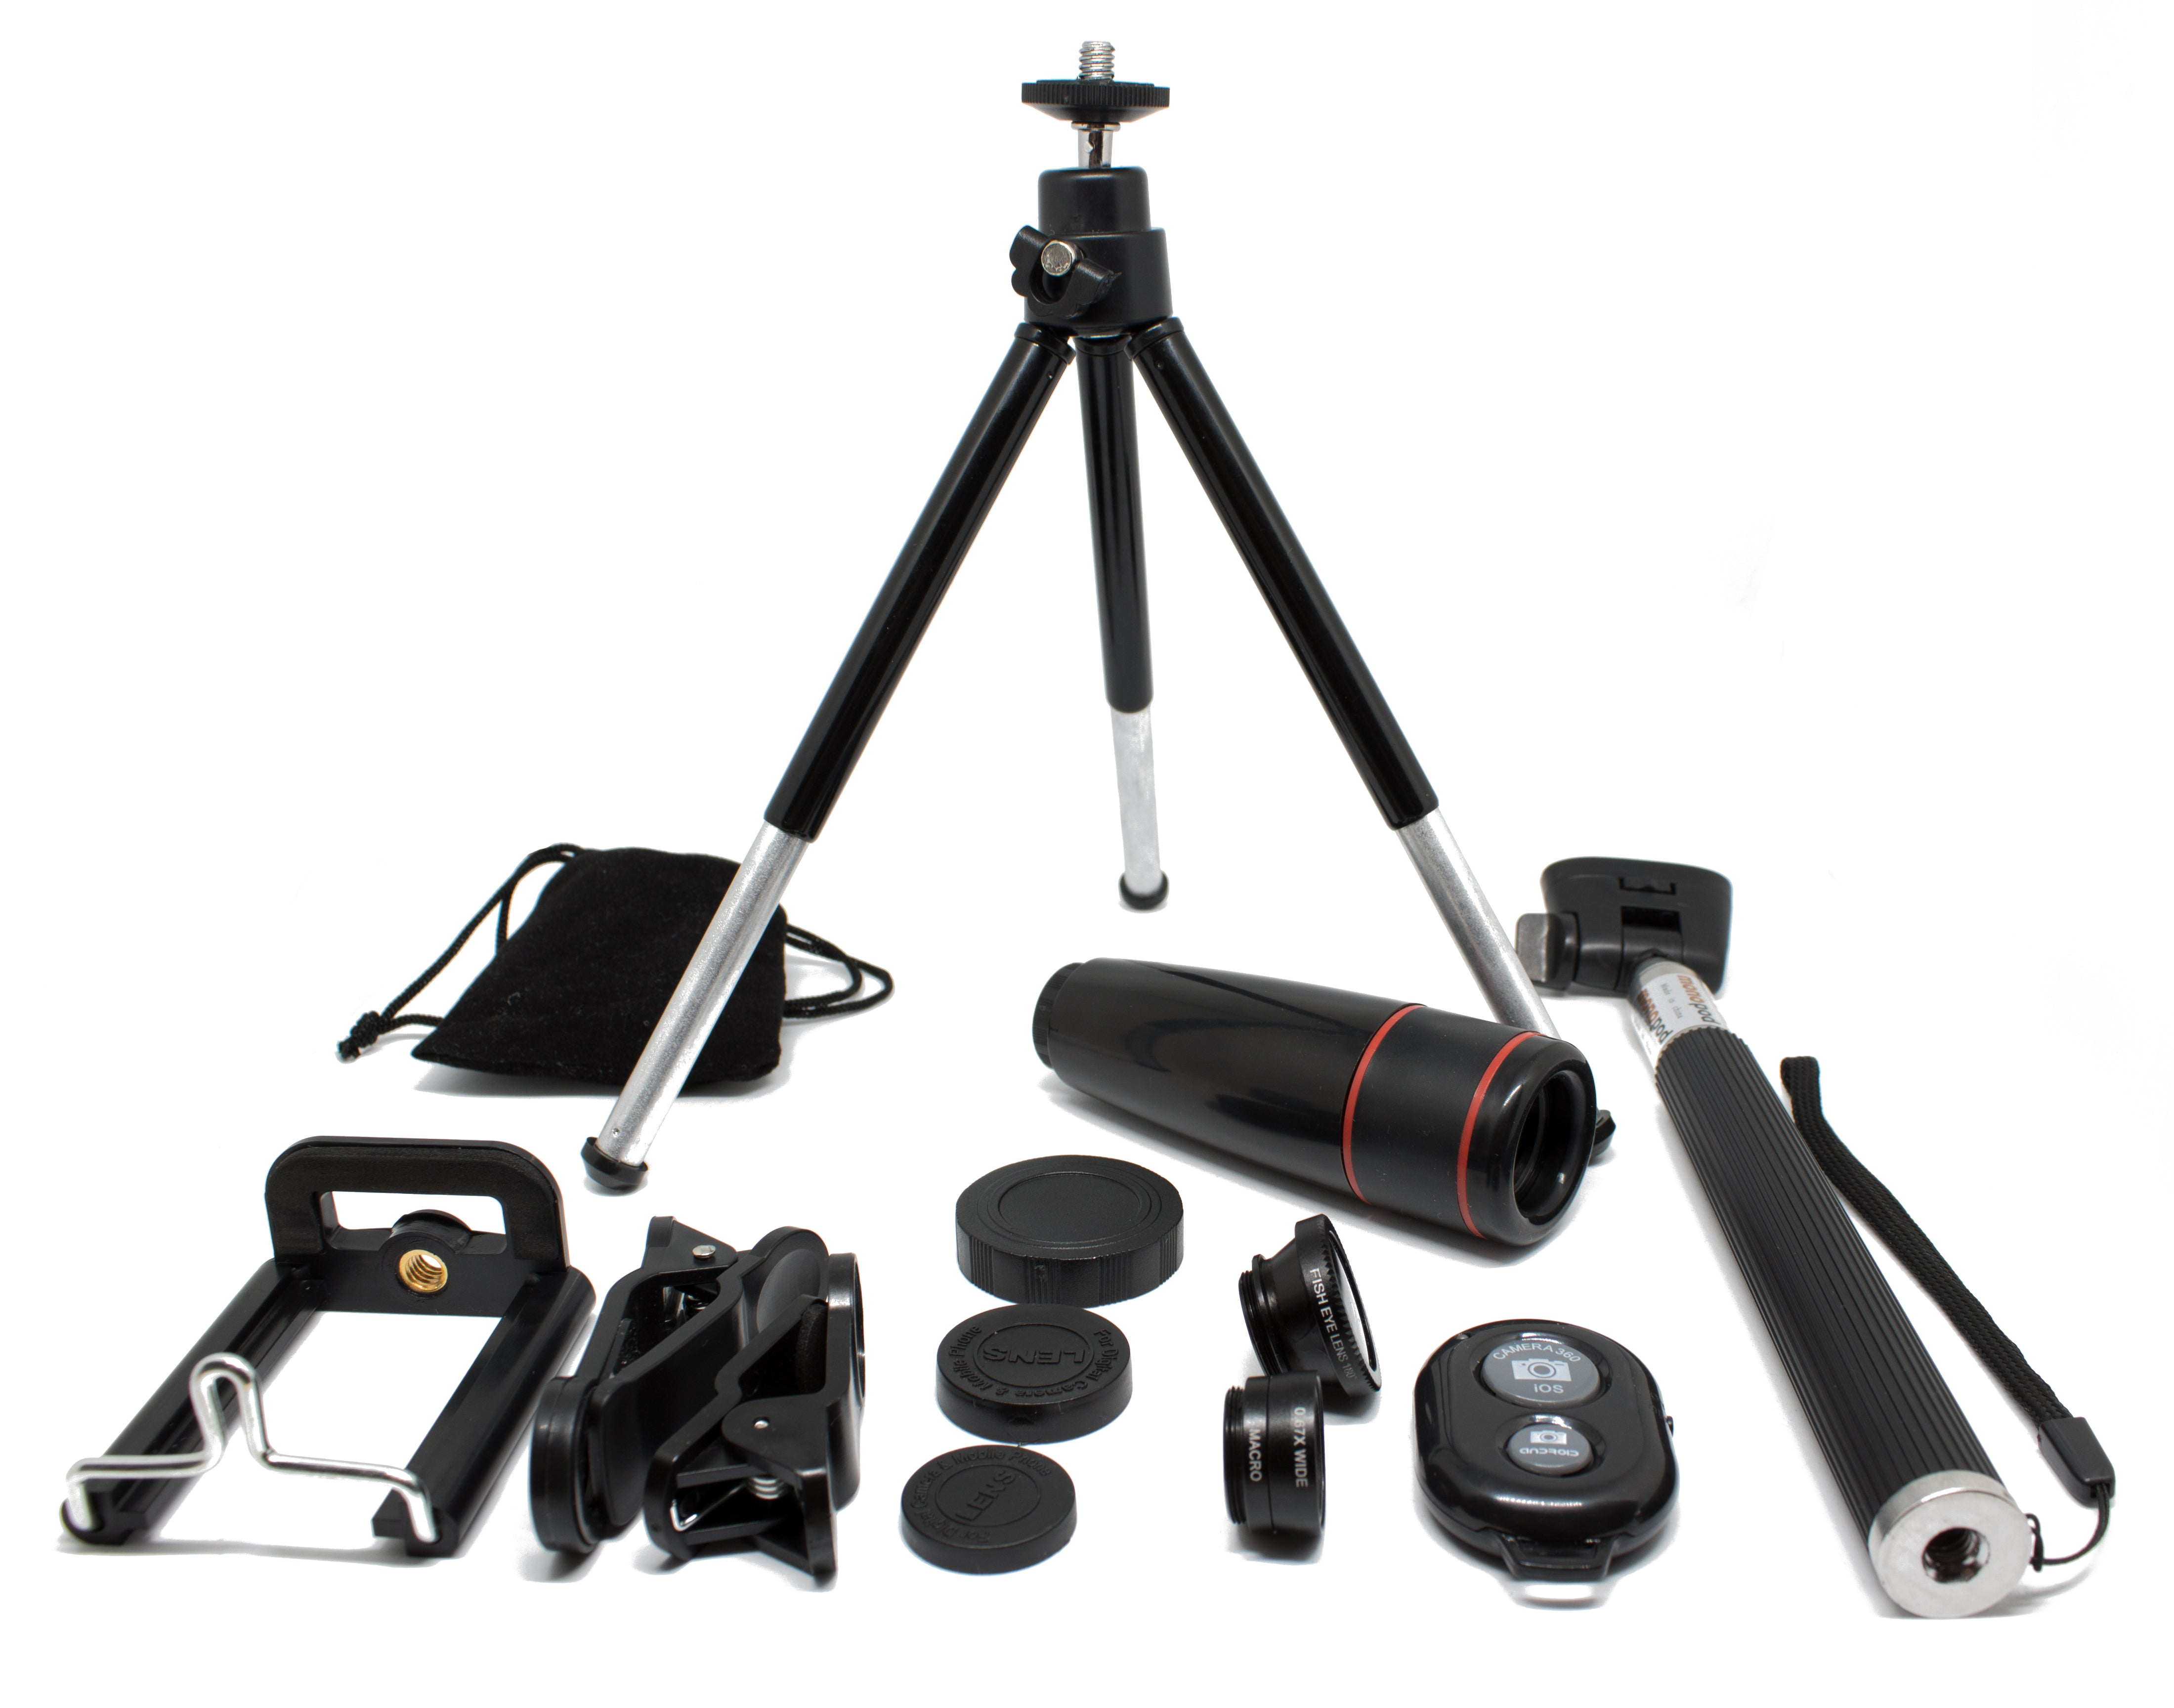 10In1 8X Zoom Universal Phone Camera Lens Travel Kit For Smartphone + Telephoto Lens + Fish Eye + Mini Tripod